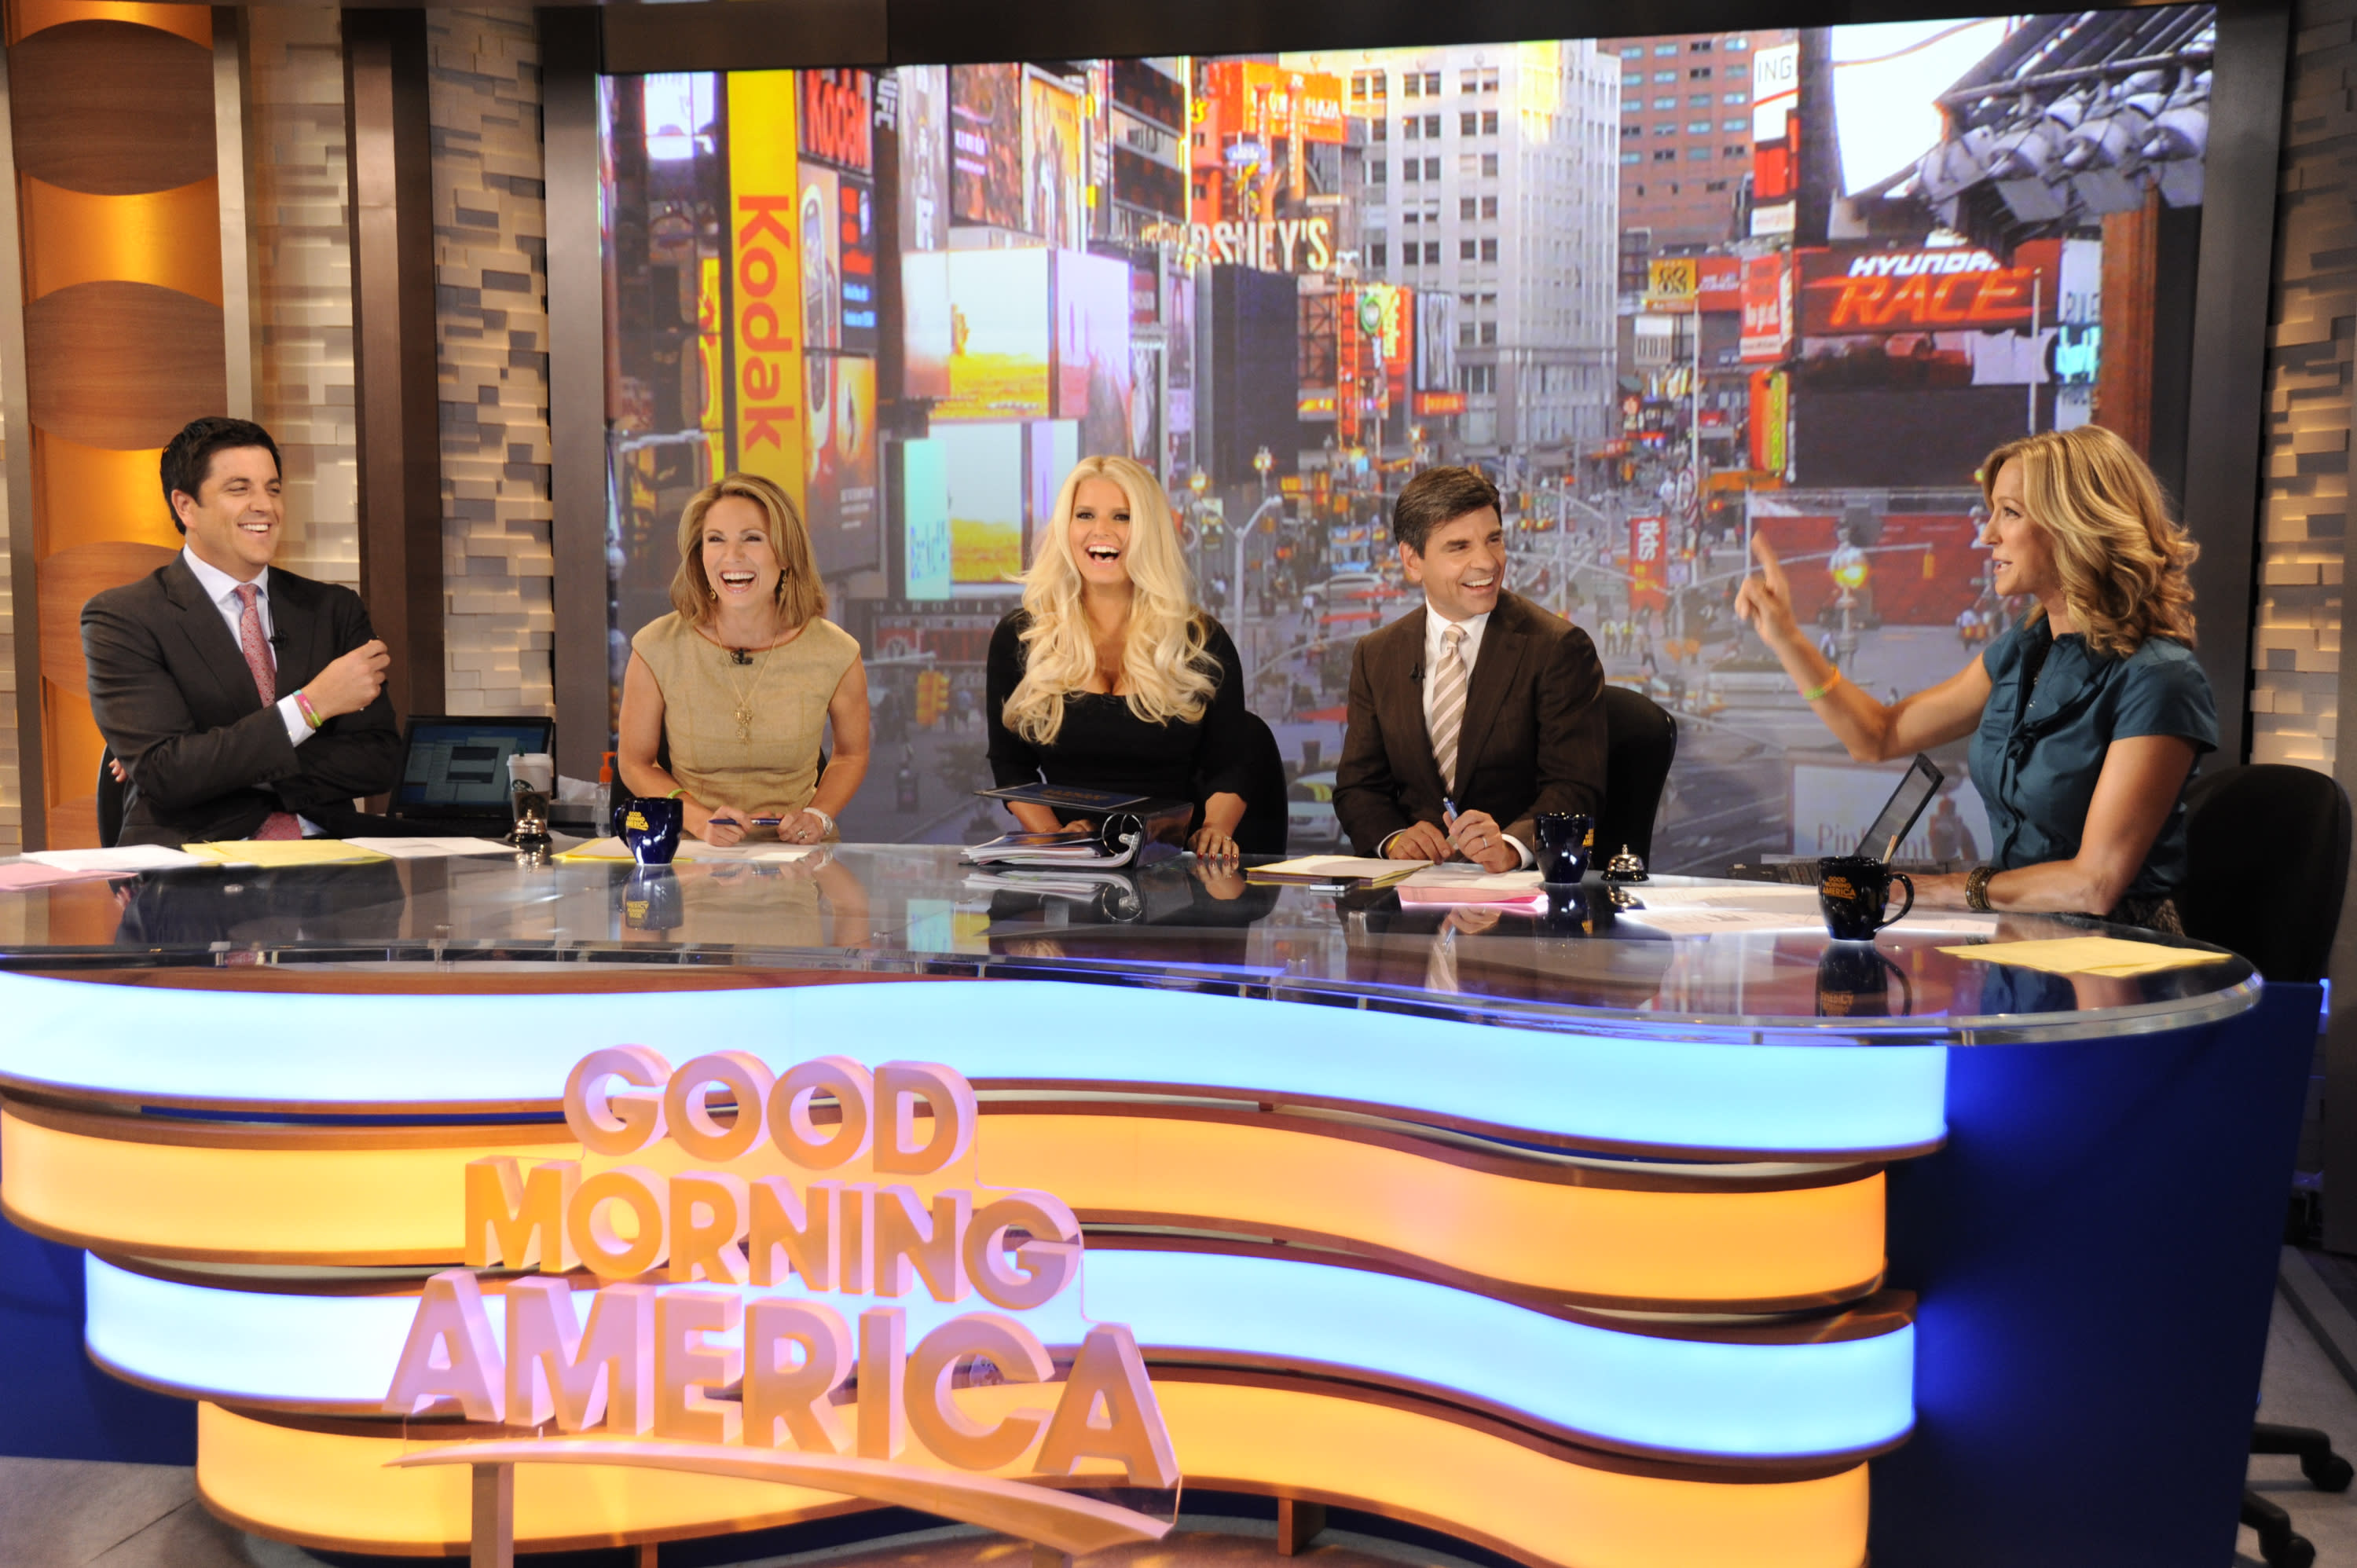 Good Morning America Guest Host Today : Jessica simpson guest hosts good morning america